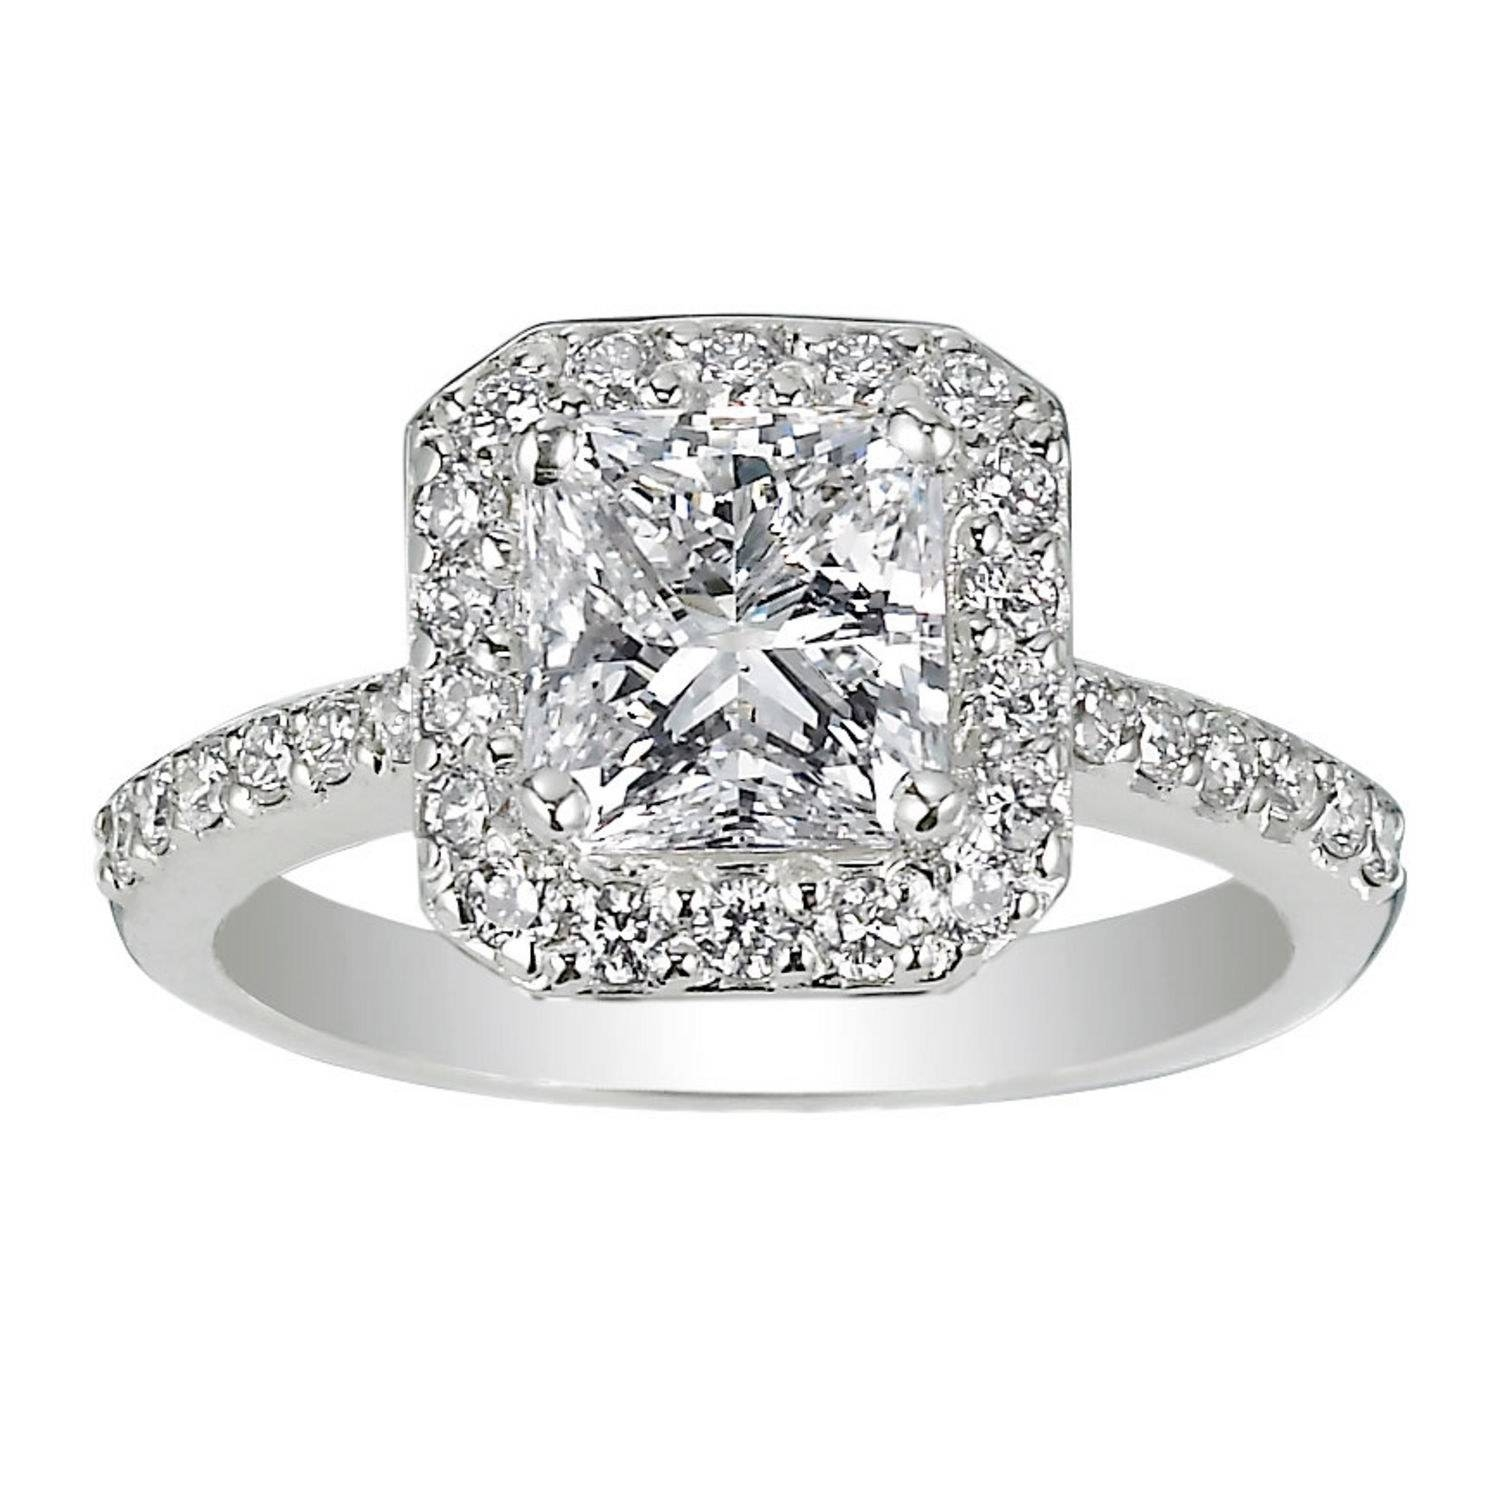 62 Diamond Engagement Rings Under $5,000 | Glamour Inside Diamonds Engagement Rings (Gallery 2 of 15)